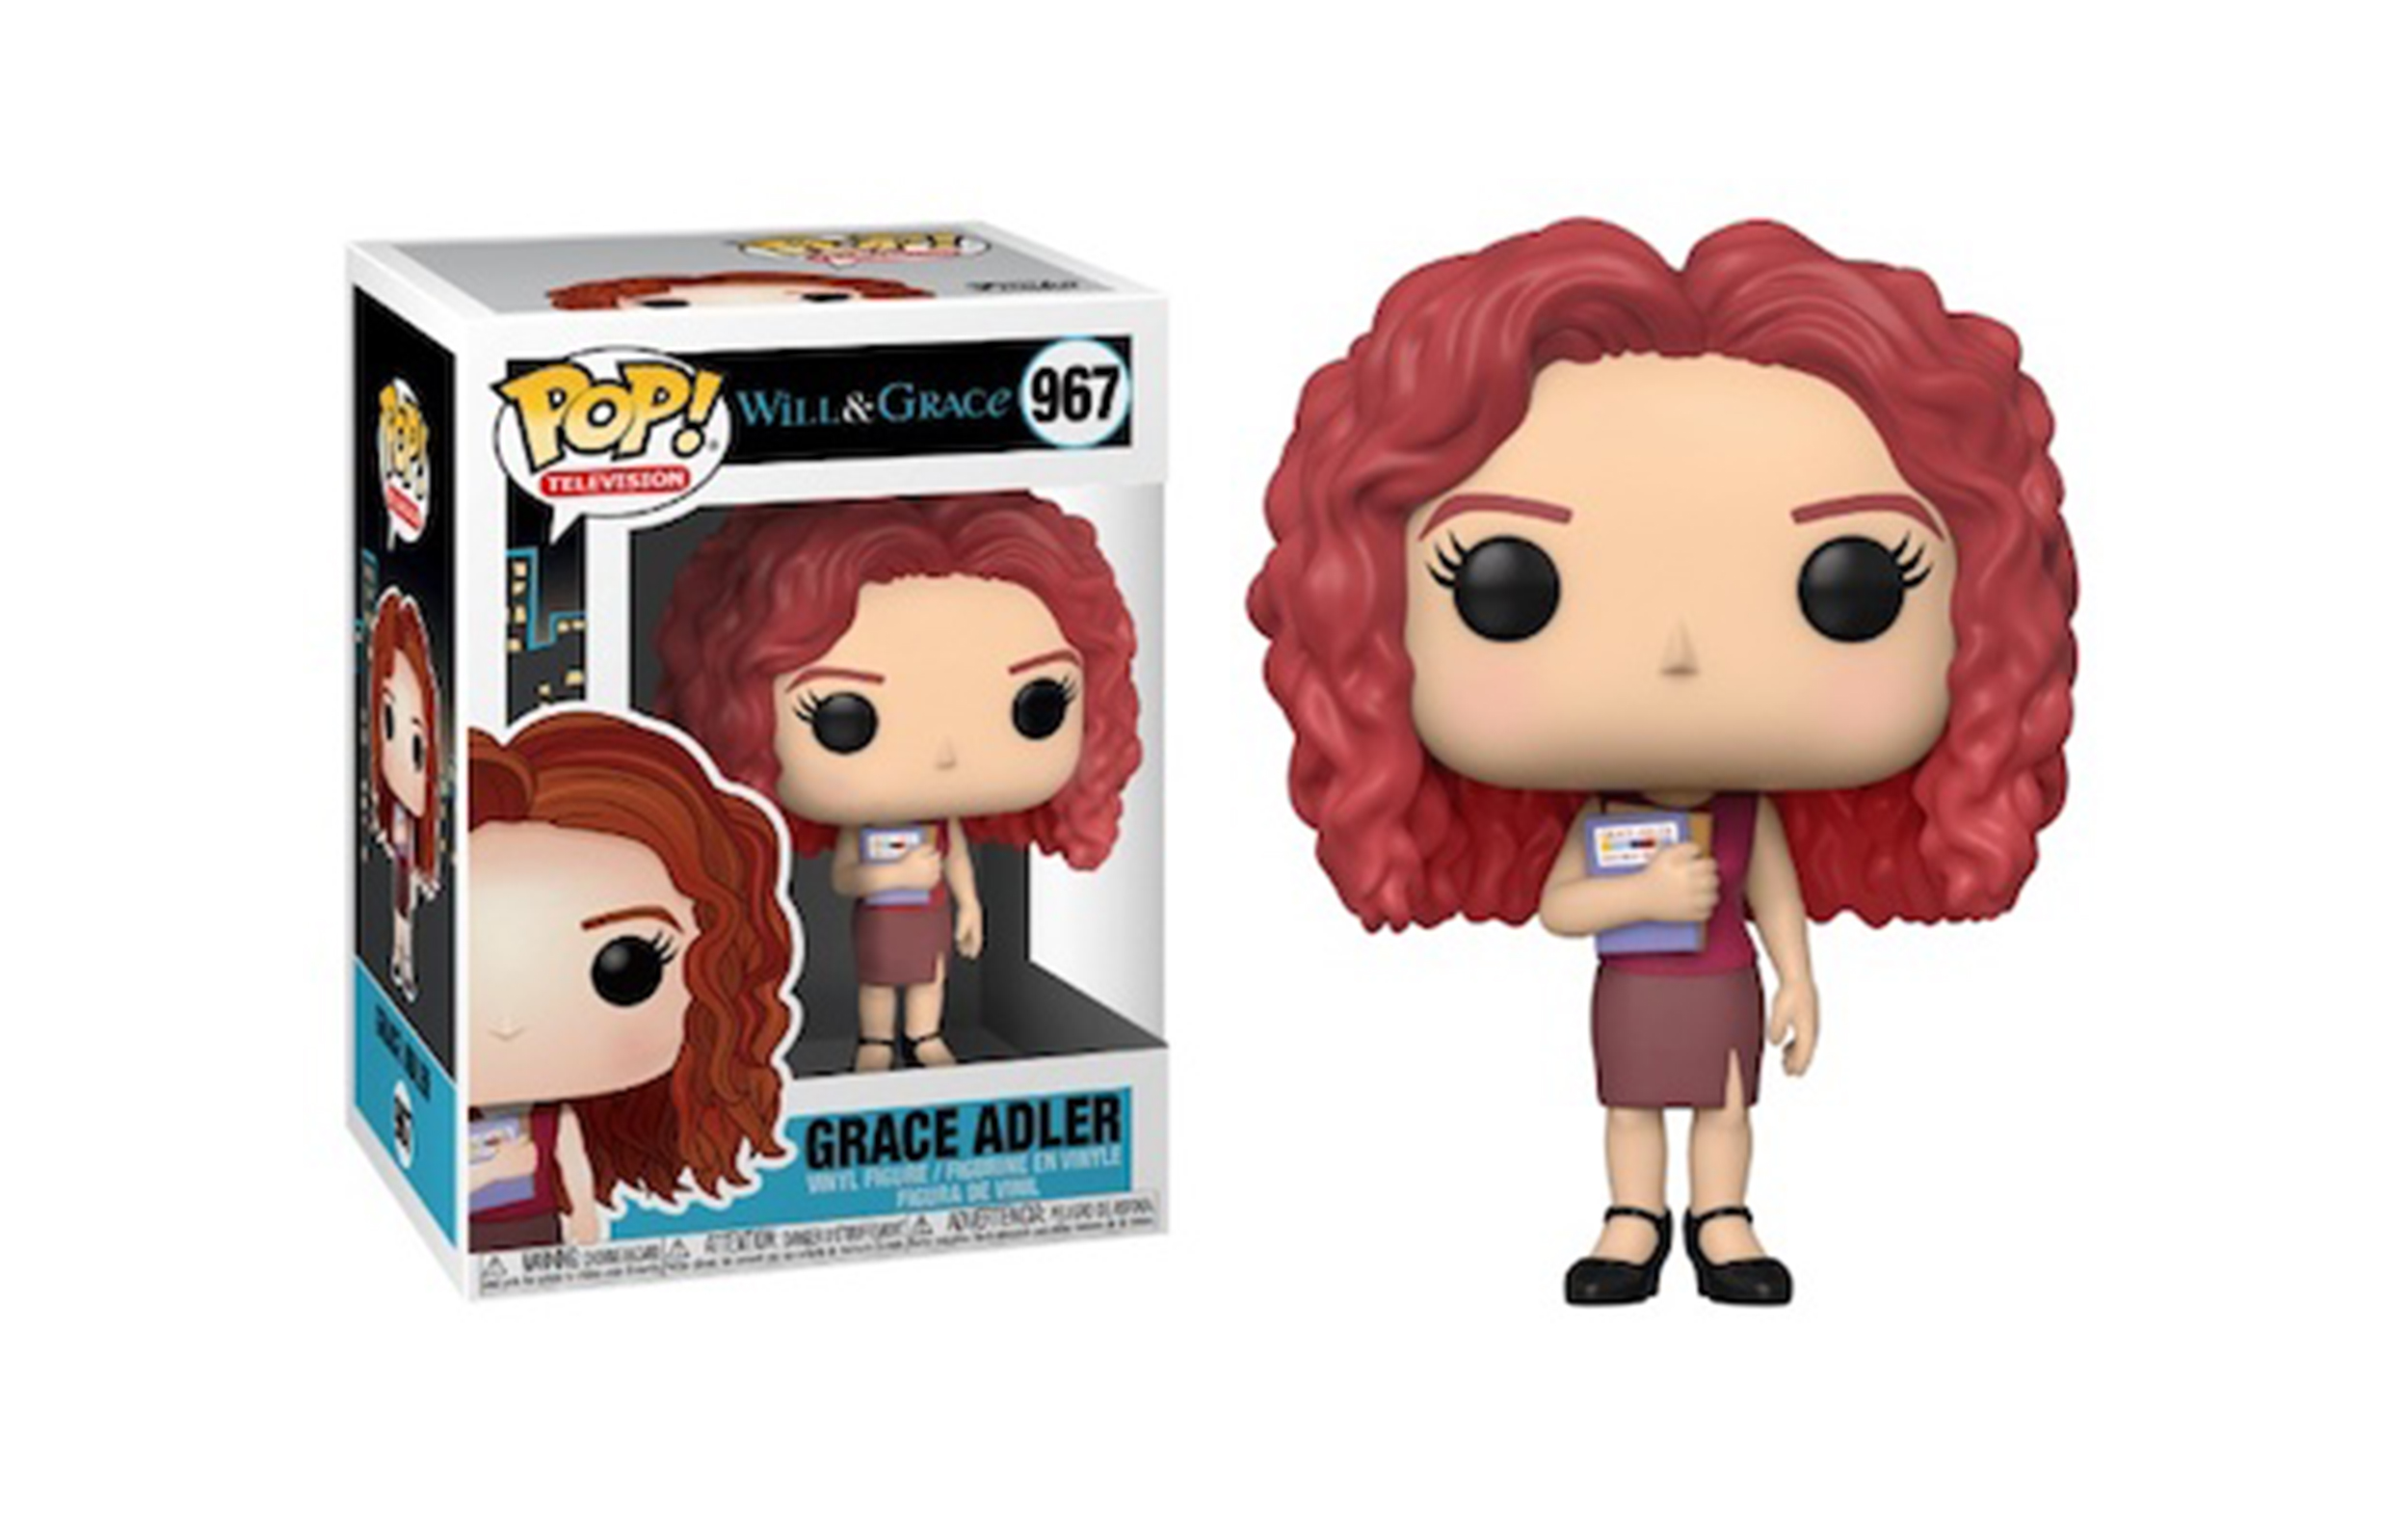 Will and Grace Grace Adler 967 Funko POP Vinyl Figure